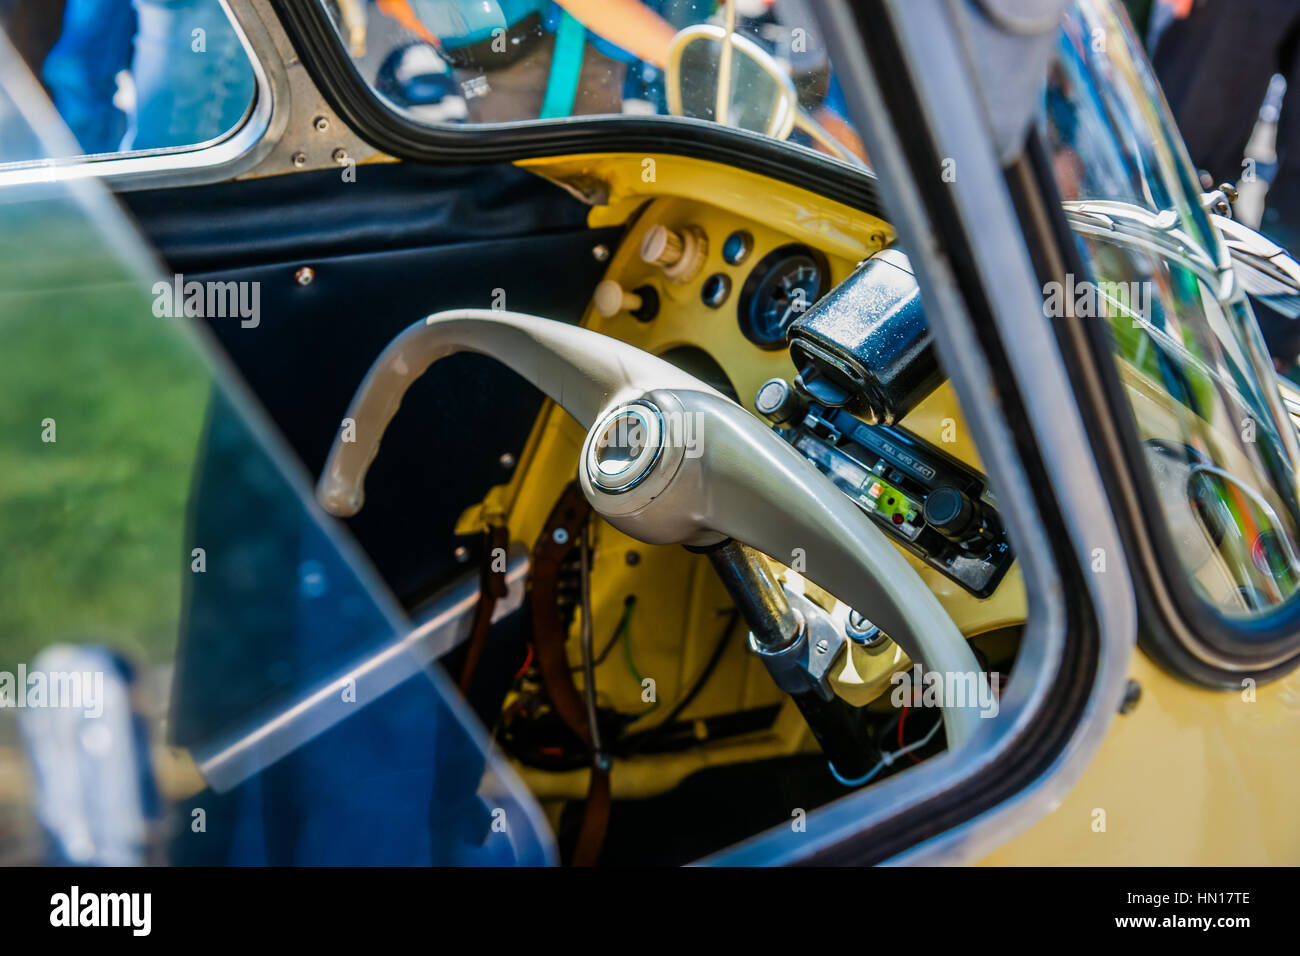 Color and beauty of vintage cars. Steering wheel and an interior of an old European two seater hybrid car-bike. - Stock Image